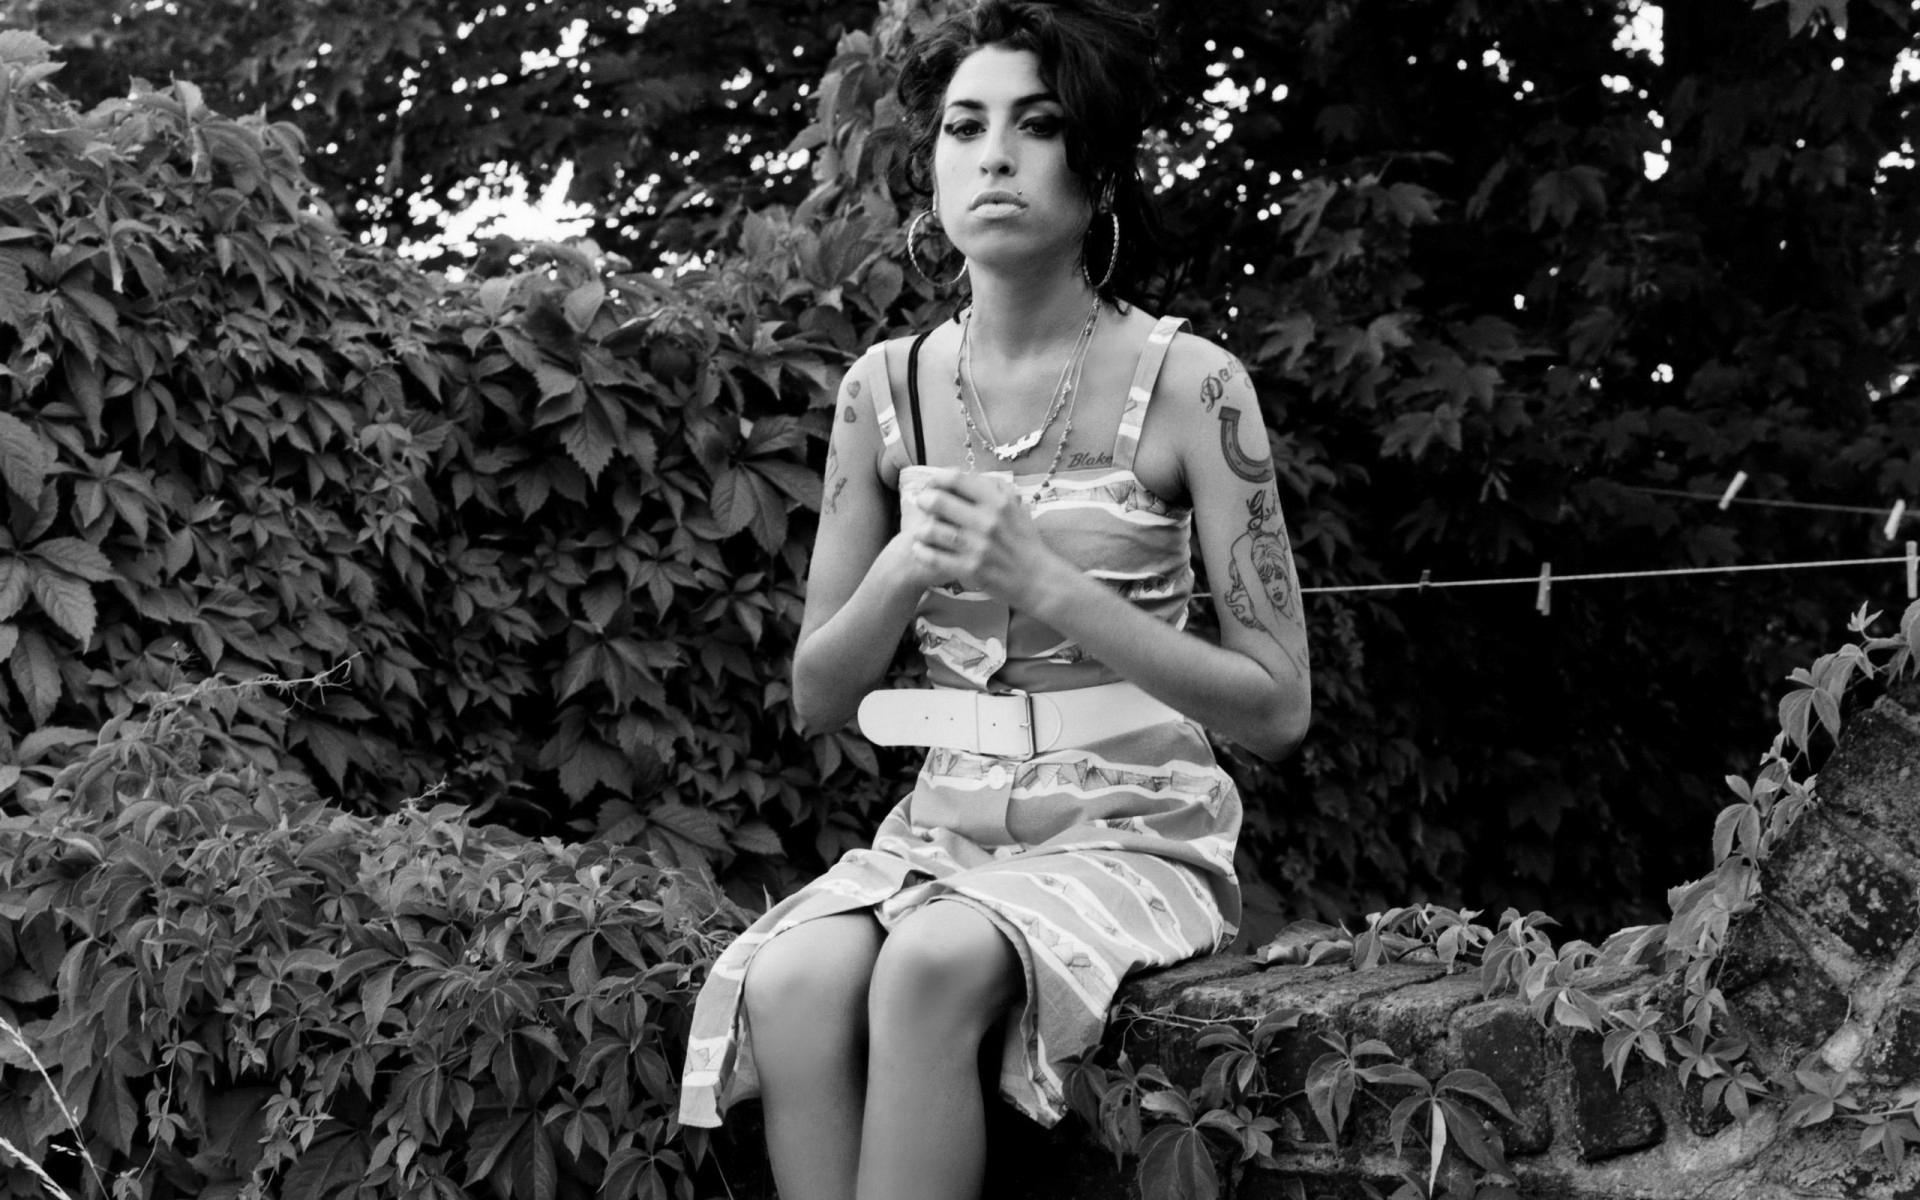 gray_amy_winehouse_girl_tattoo_fence_dress_hd-wallpaper-1581